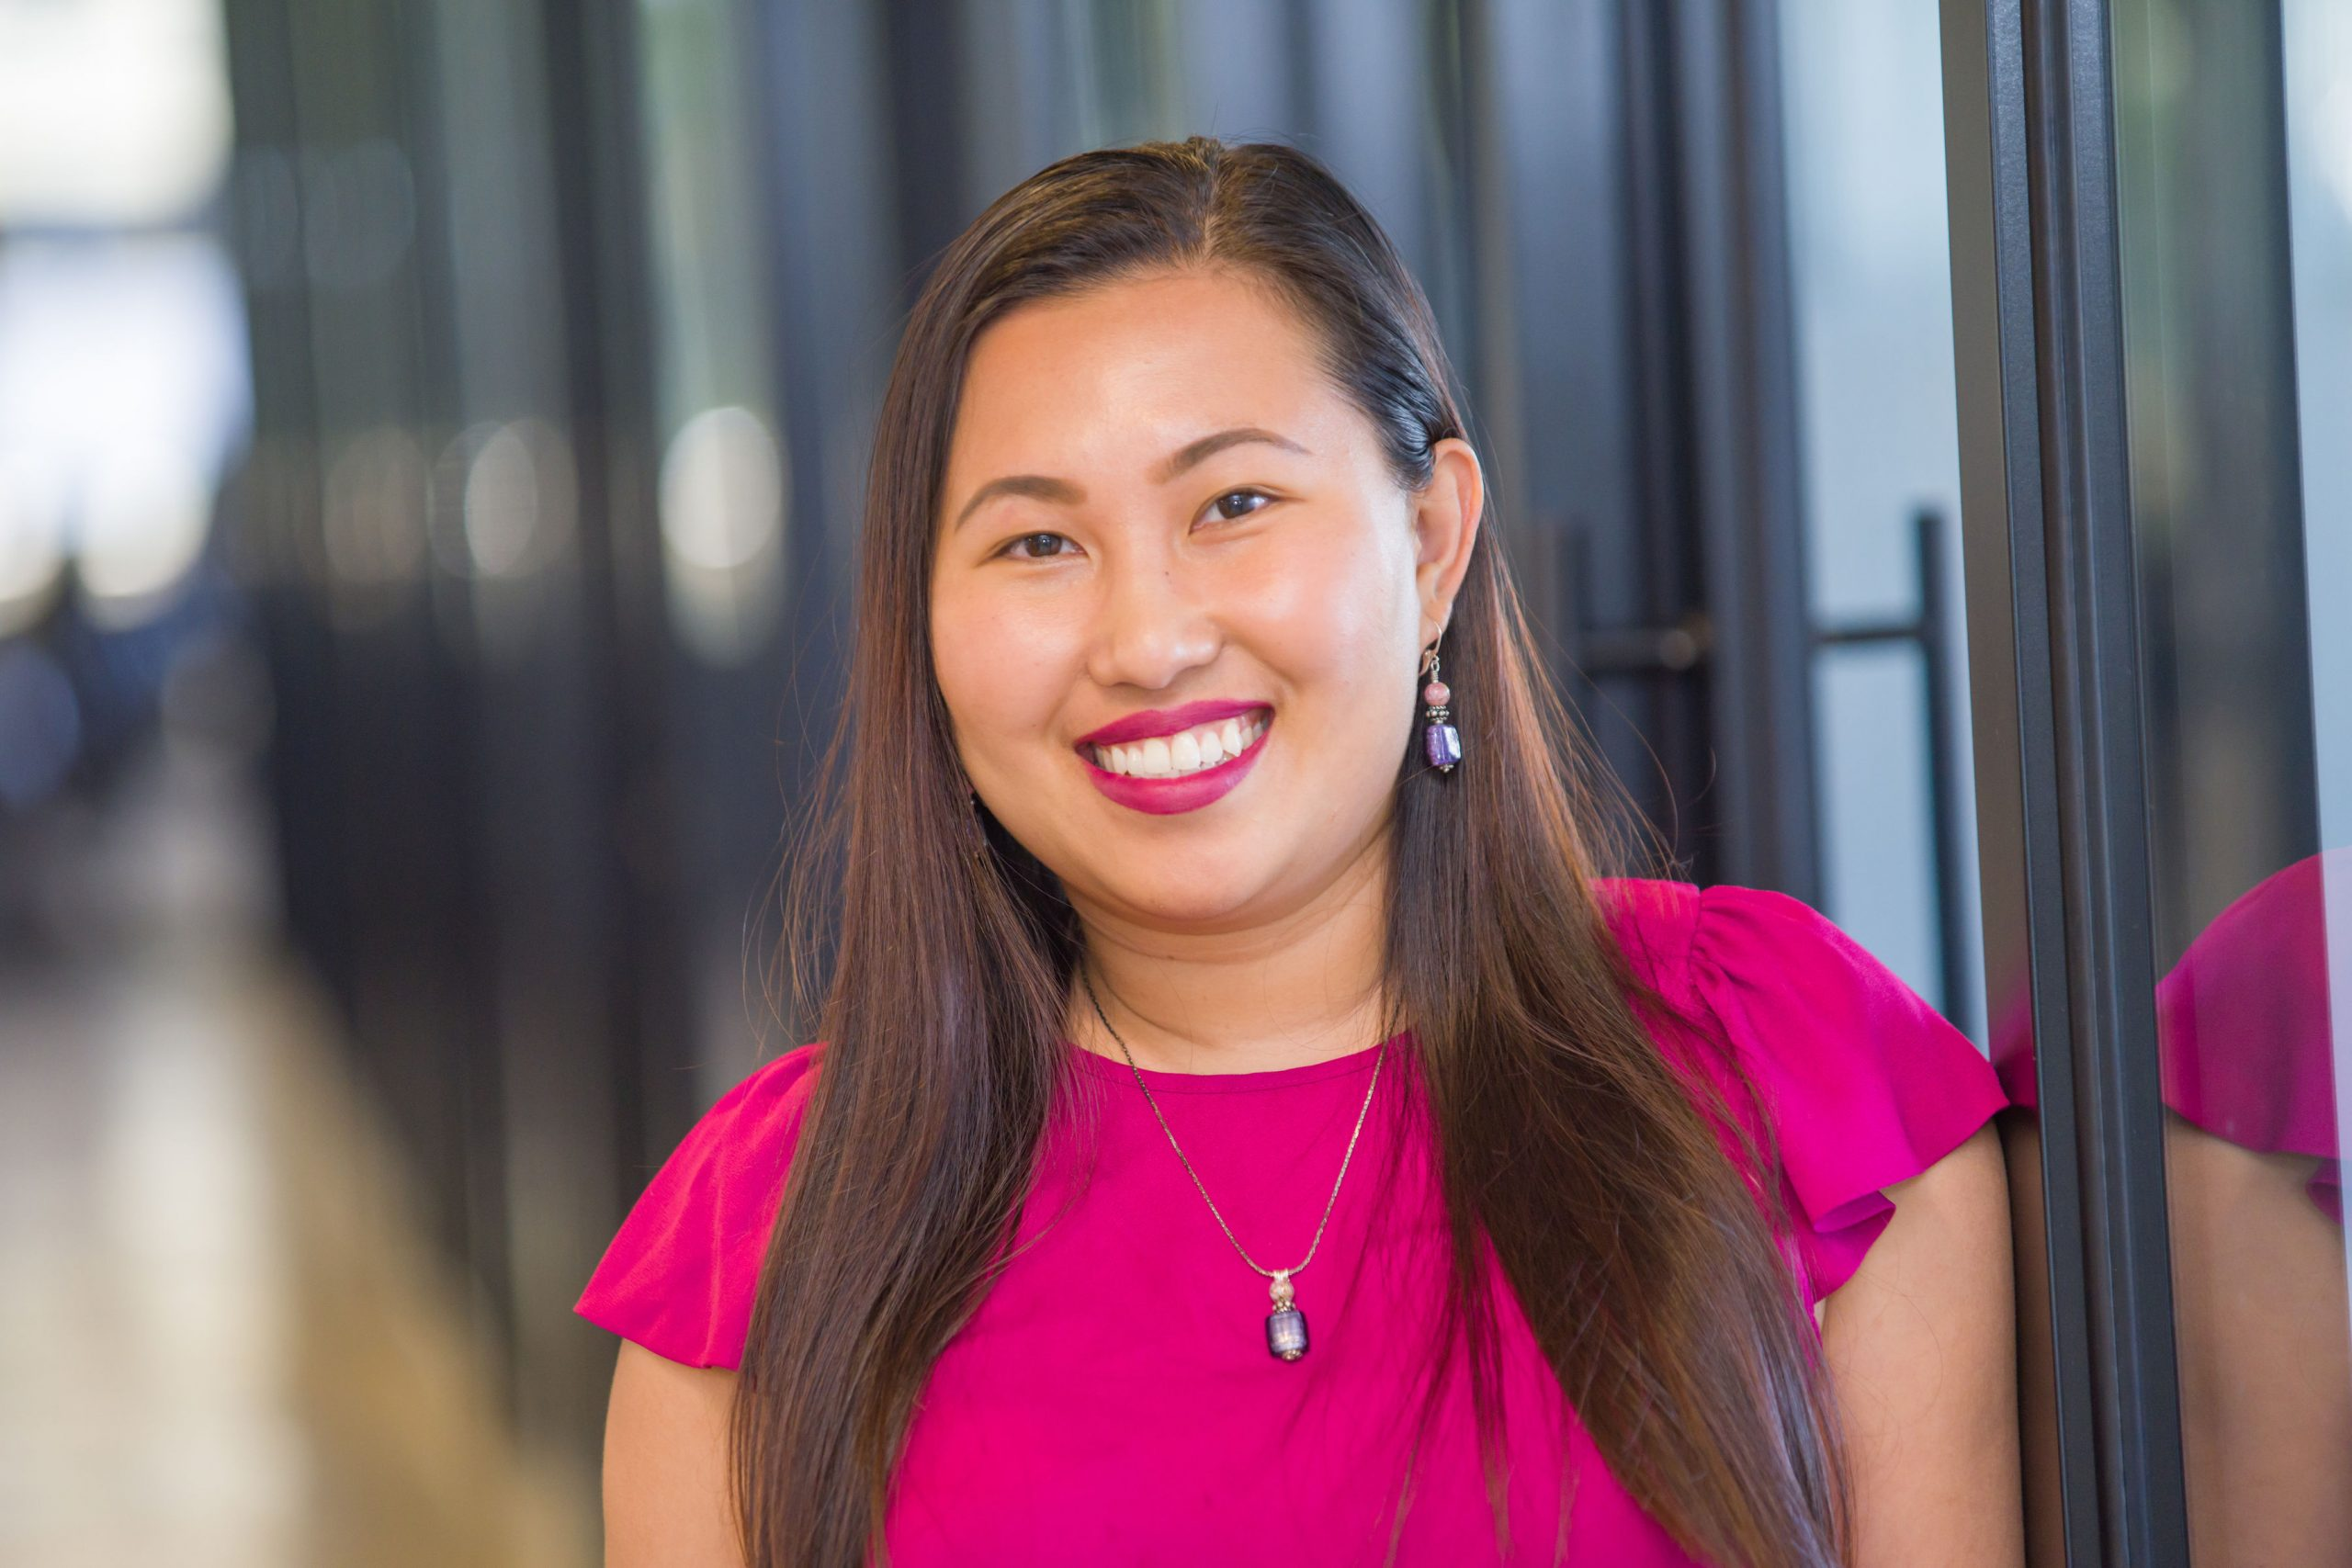 CAPTC Family Pact program manager Nicole Nguyen smiling in an office hallway